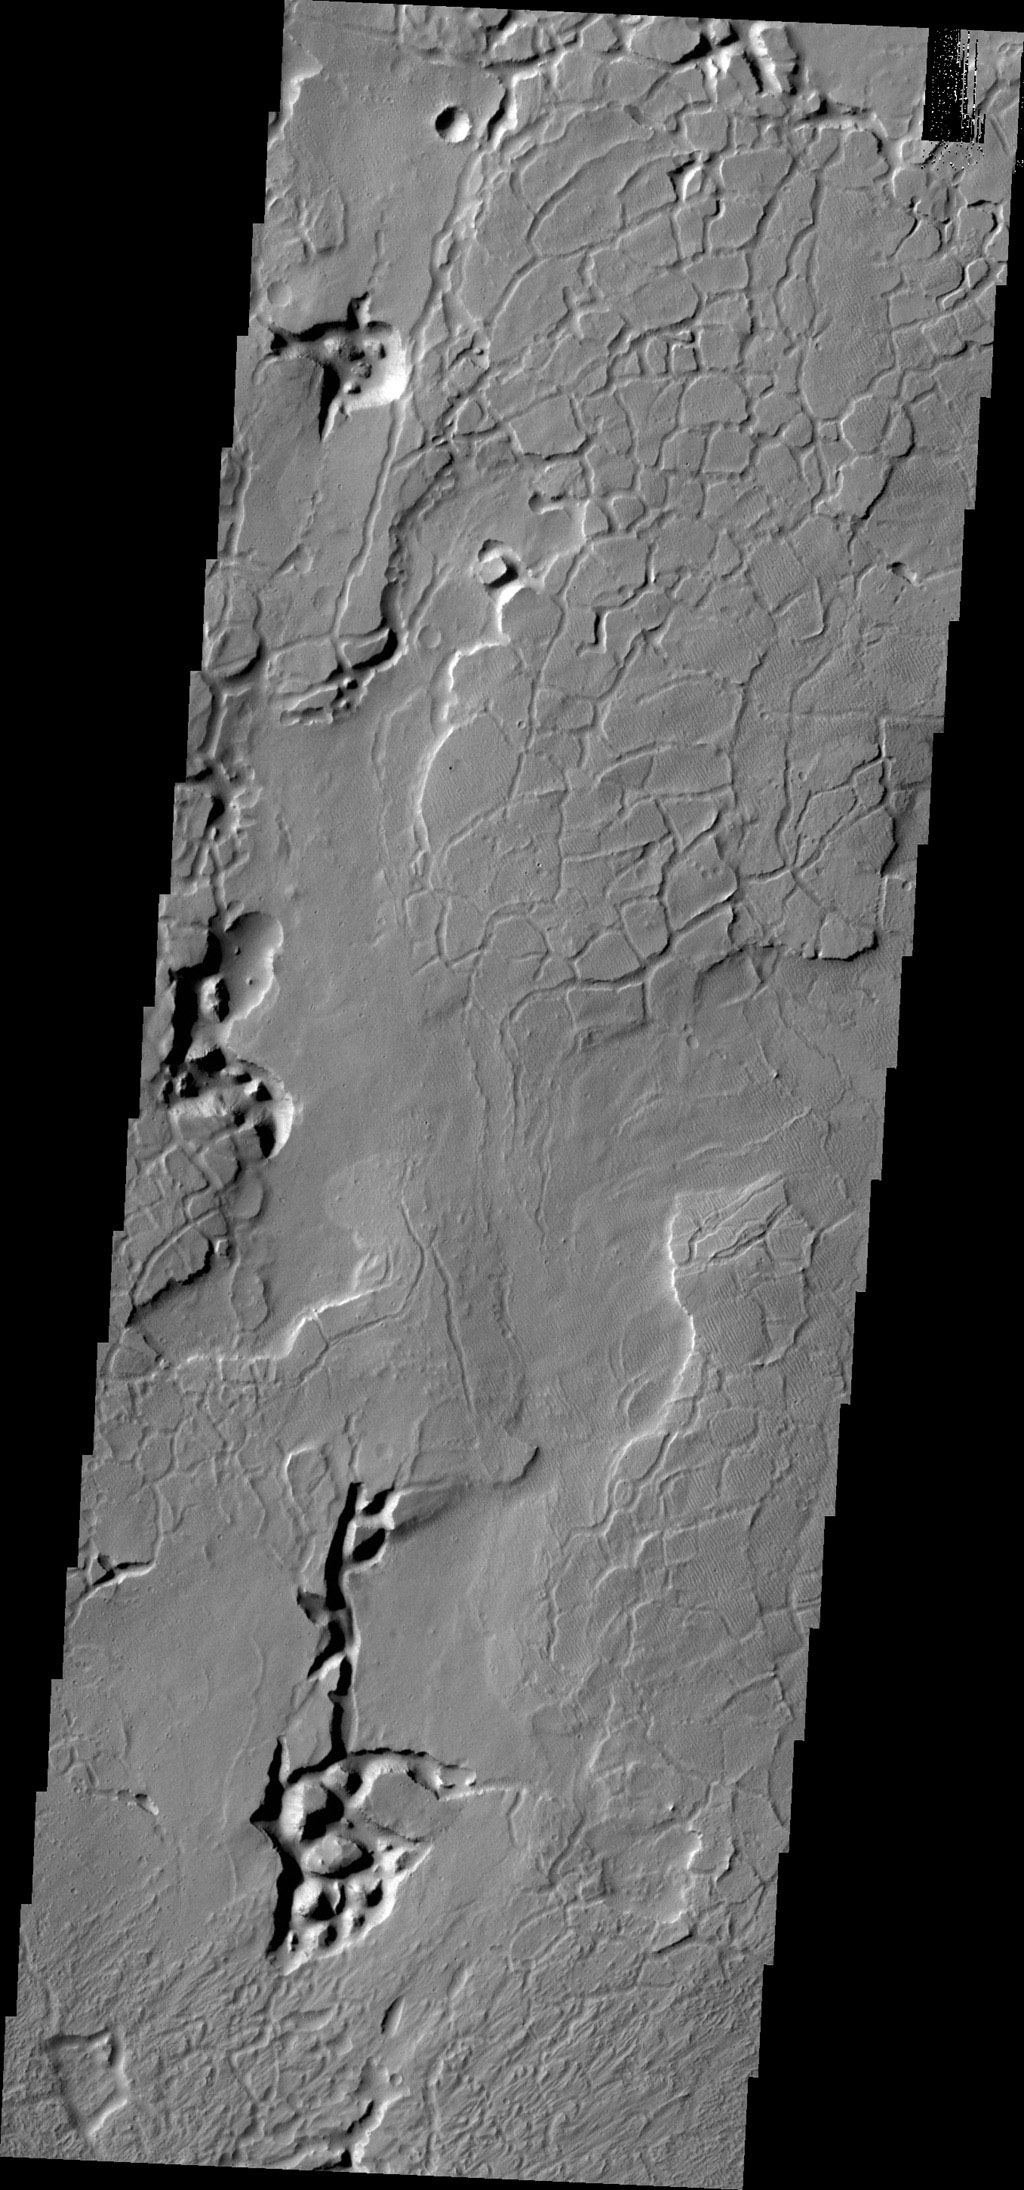 Tectonics played the major role in shaping the surface of this image captured by NASA's 2001 Mars Odyssey spacecraft. This image contains arcuate fractures and isolated depressions containing chaos.